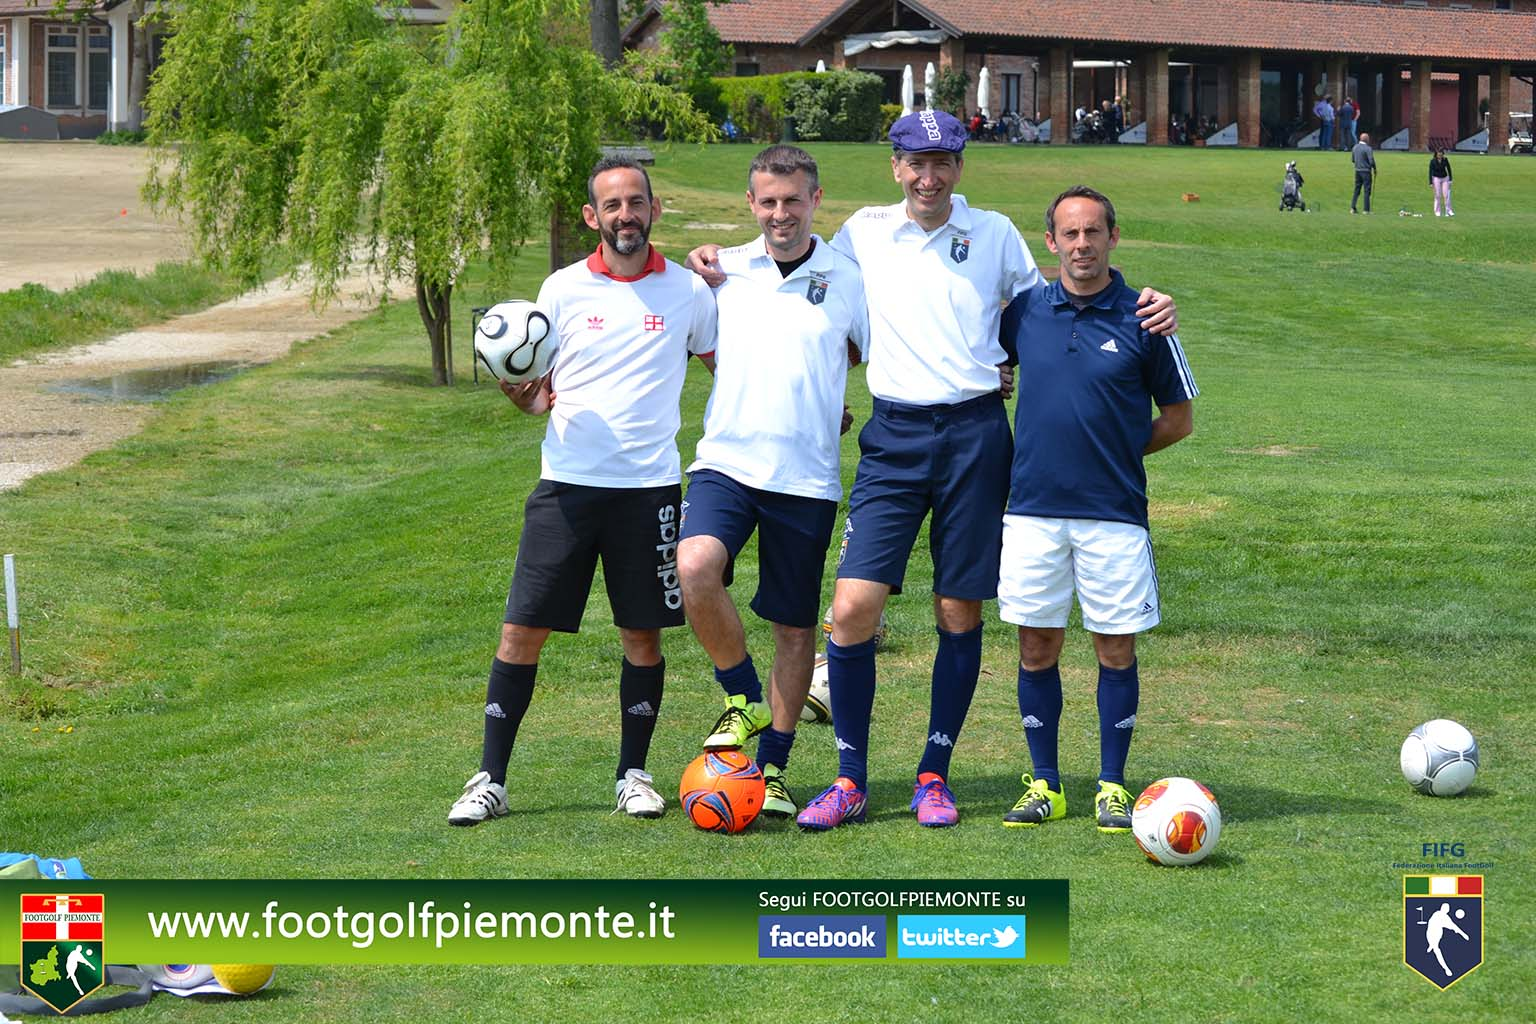 FOTO 9 Regions' Cup Footgolf Piemonte 2016 Golf Città di Asti (At) 30apr16-91